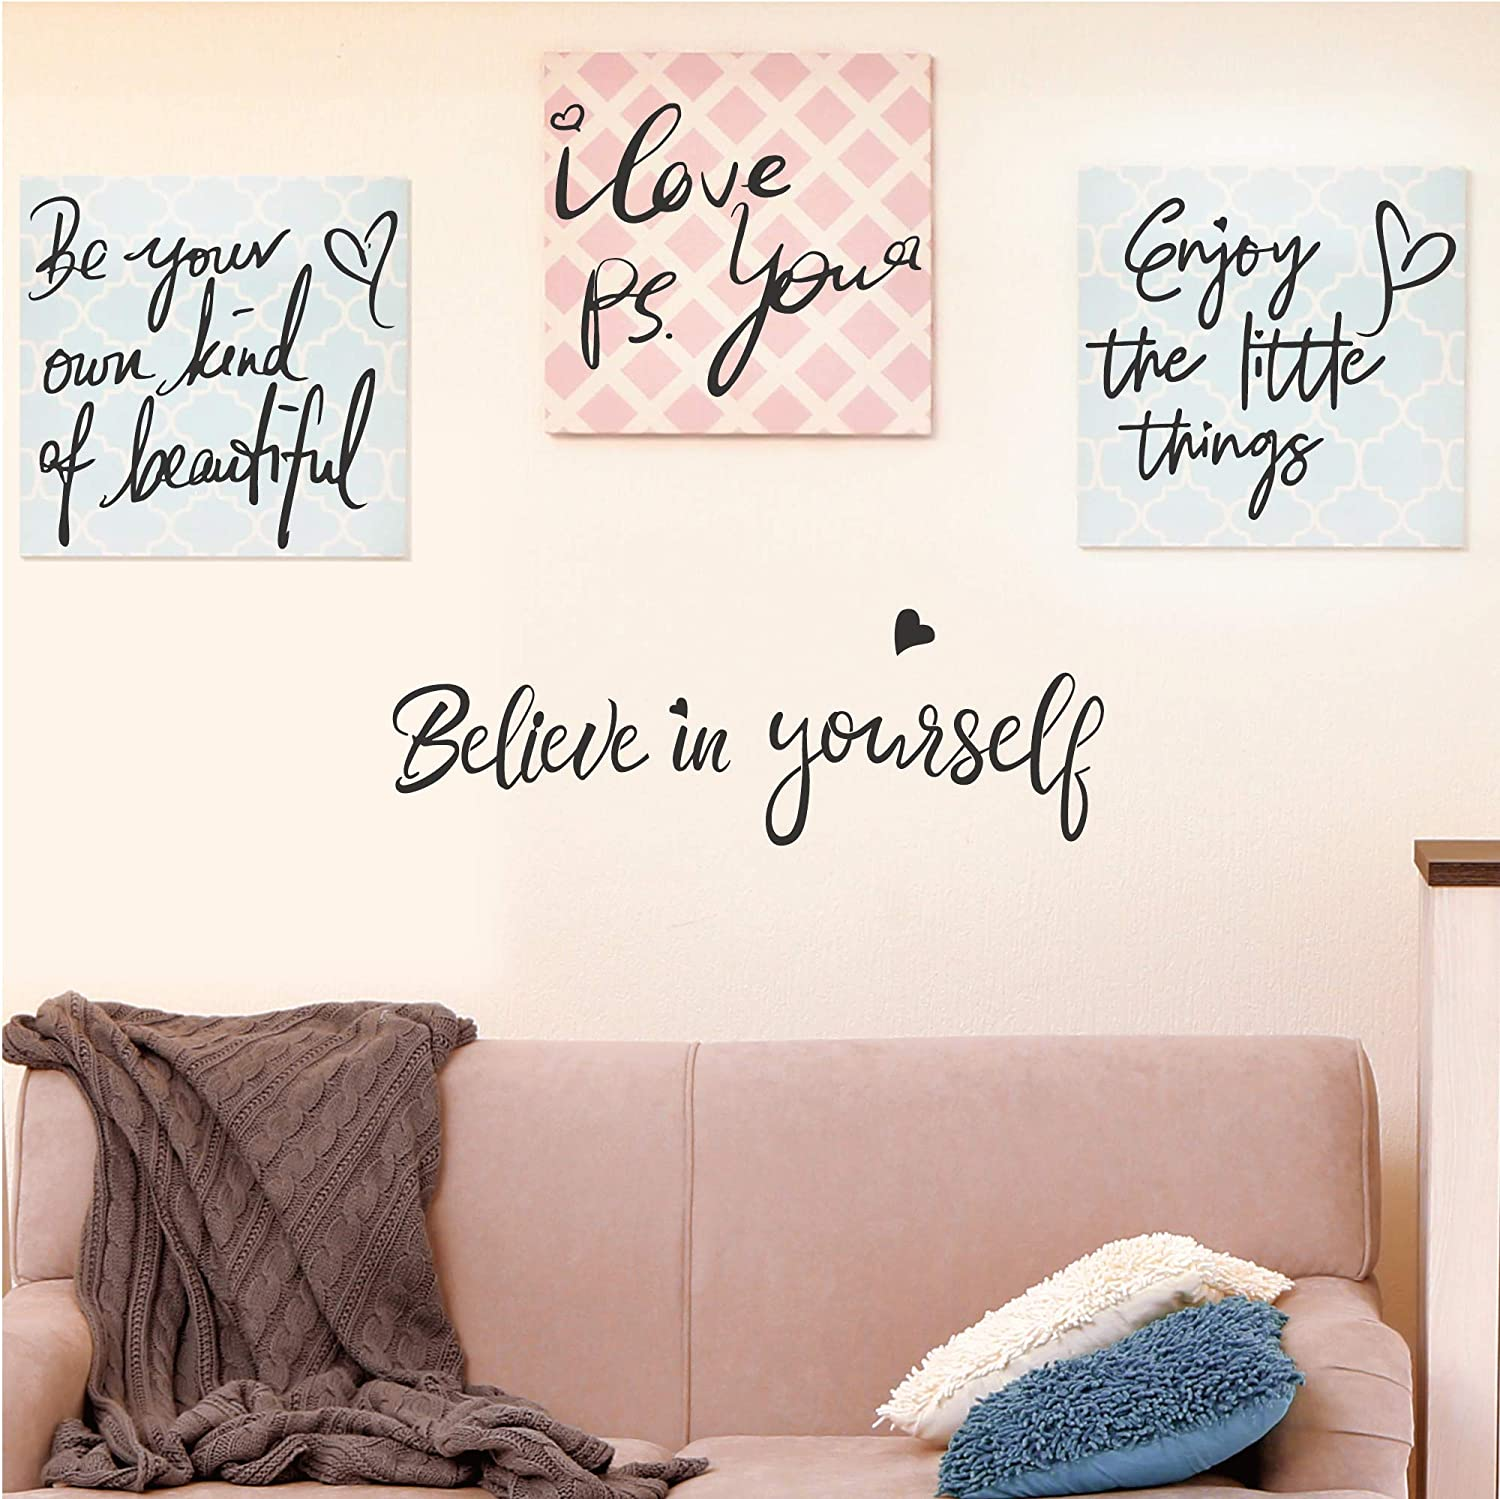 4 Set-Believe in Yourself-Be Your Own Kind of Beautiful-Enjoy the Little Things-PS. I Love You-Inspirational Quotes Wall Decals Vinyl Wall Stickers for Girls Women Bedroom Living Room Home Decor